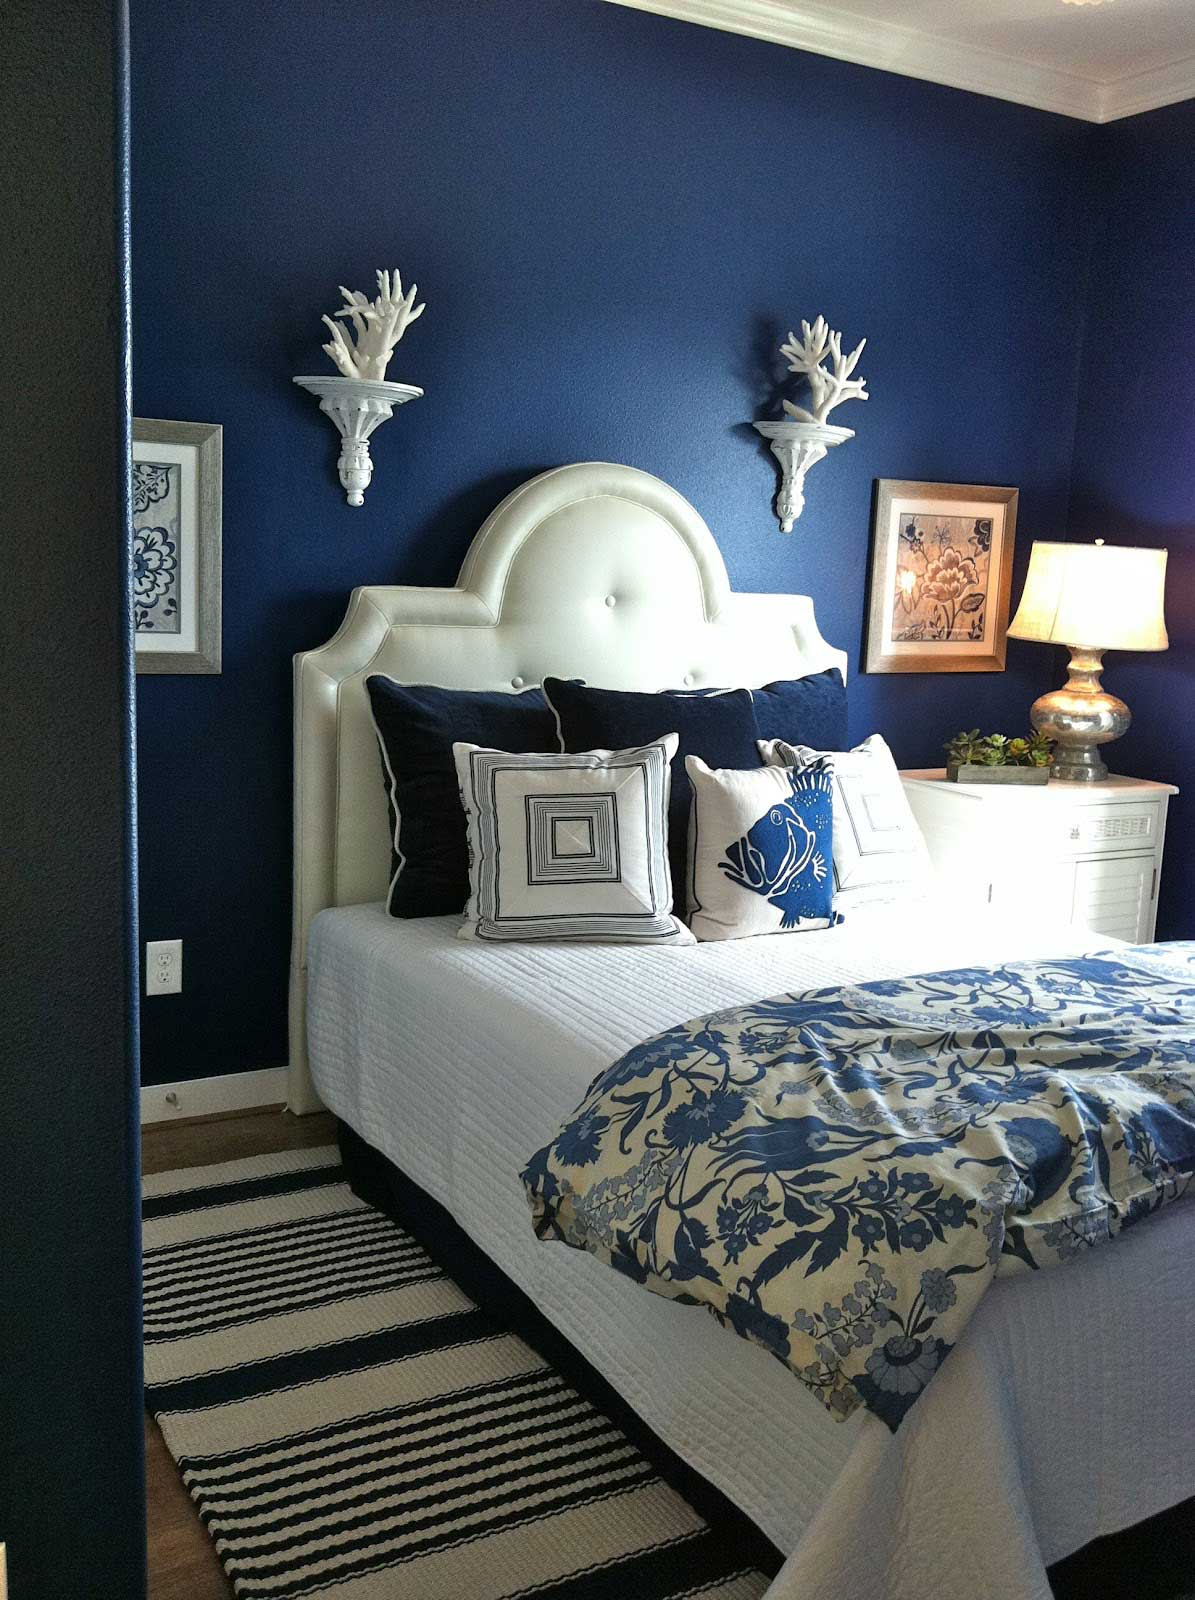 bedroom marvellous small bedroom ideas for moody interior breathtaking bedrooms in shades of blue 856